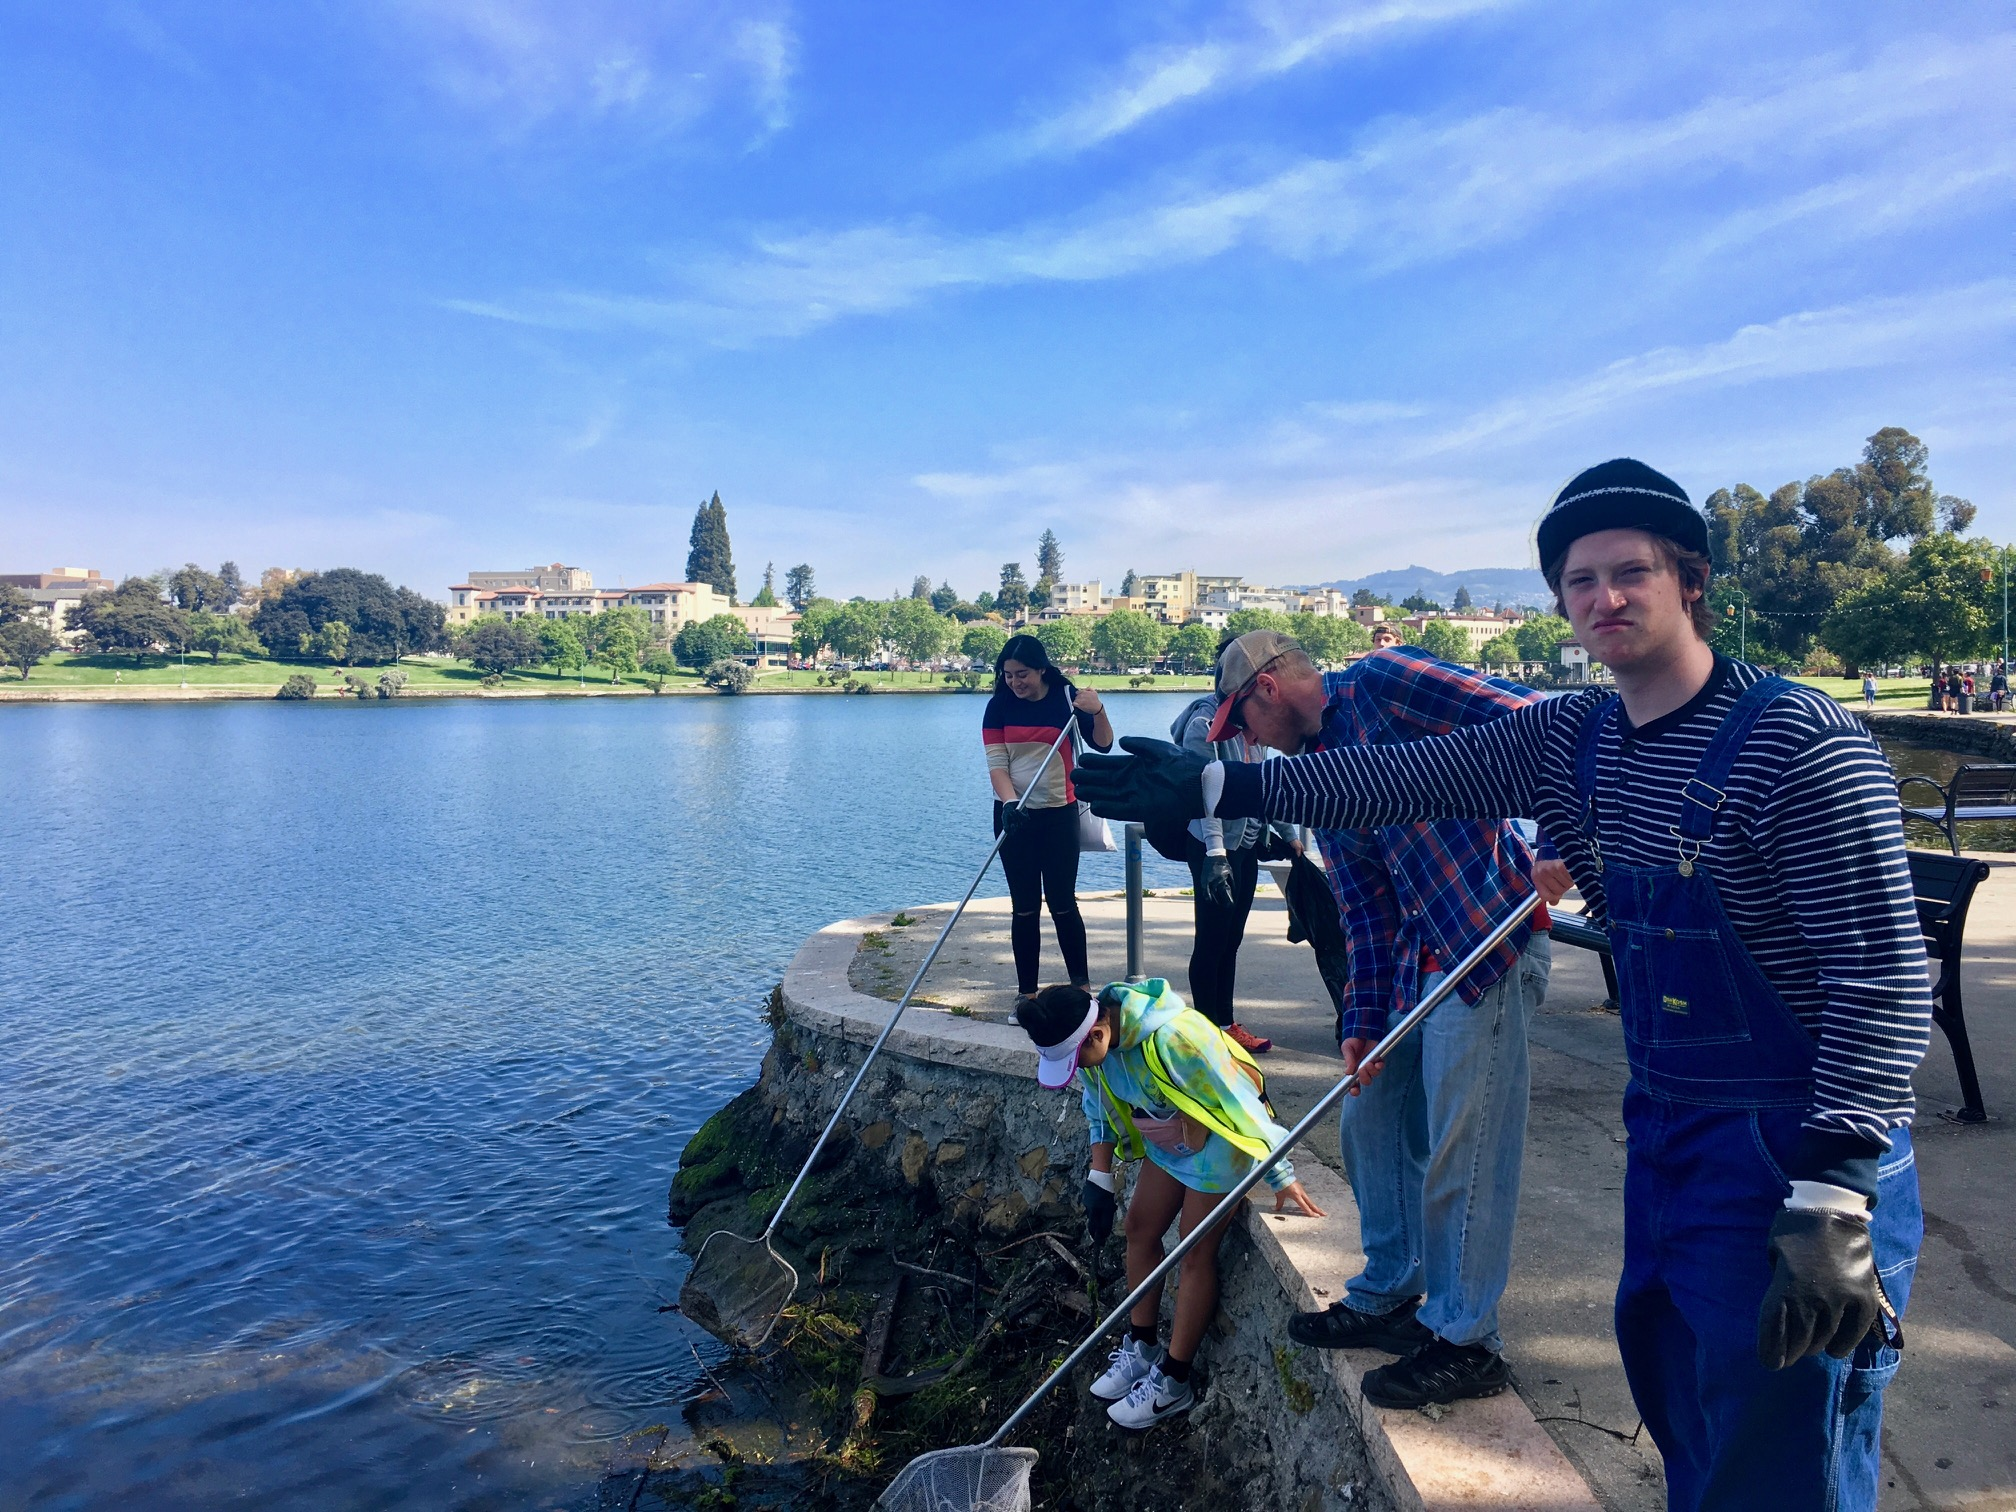 Lake Merritt Clean Up – Service Day